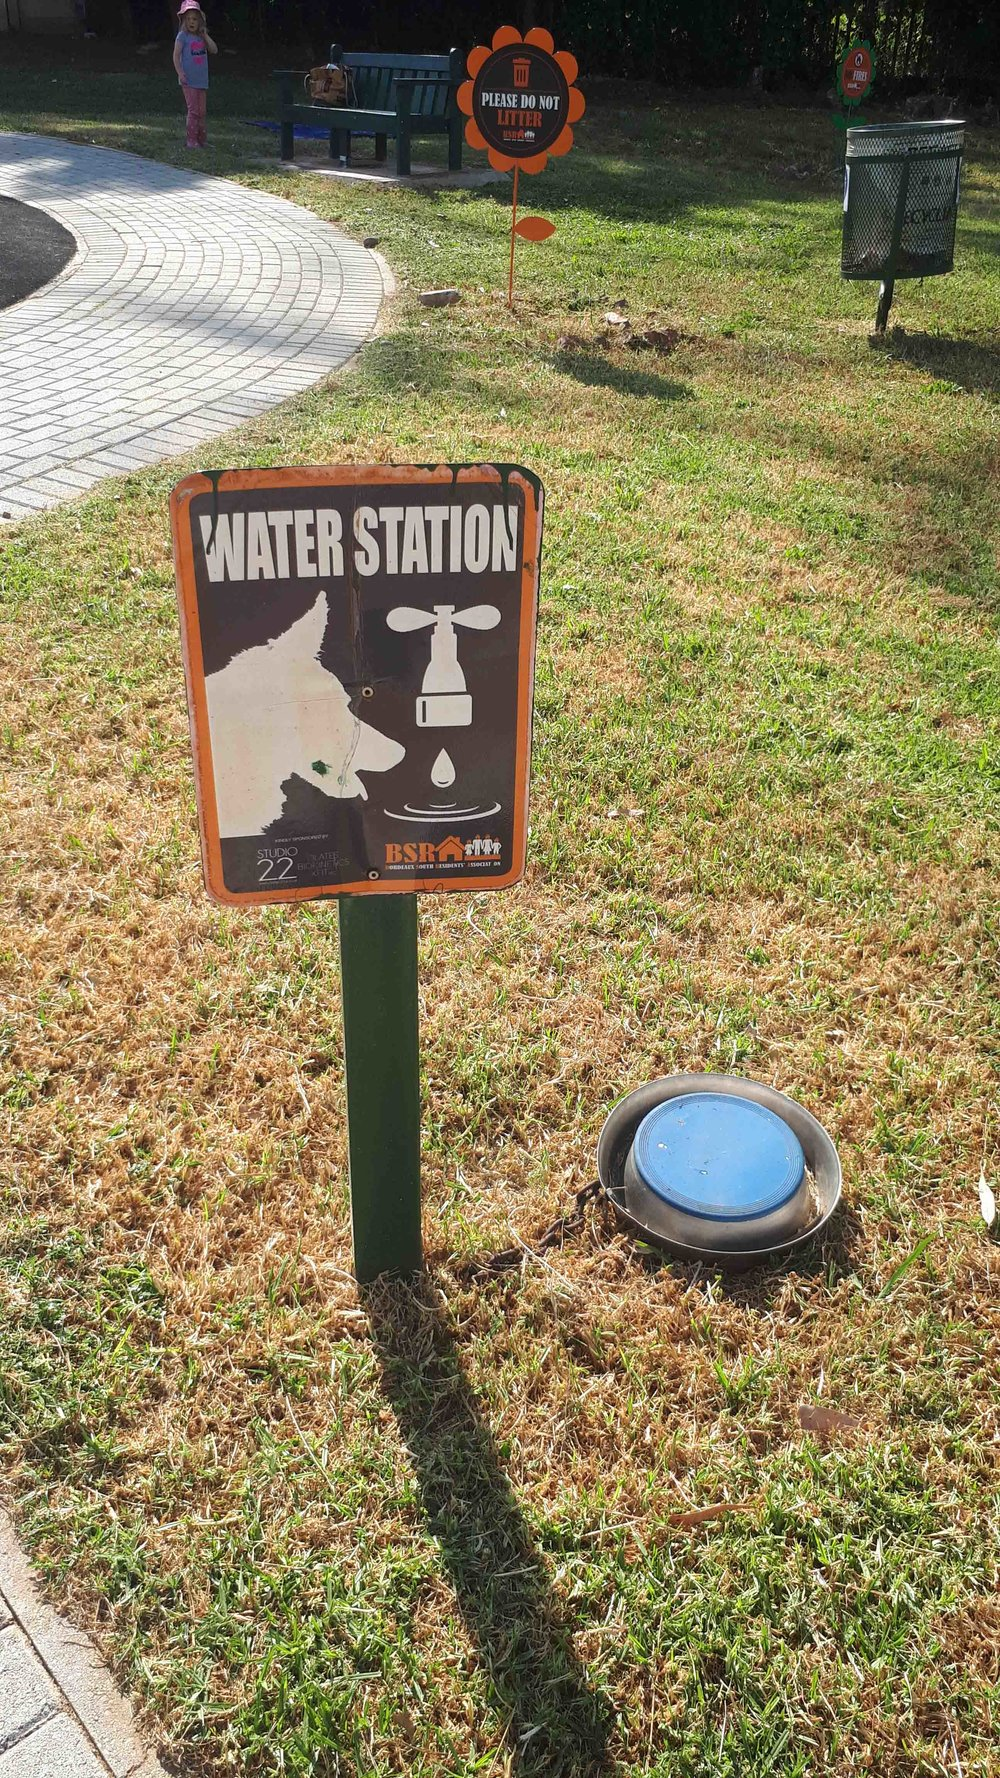 Water Bowls for Dogs visiting the Park